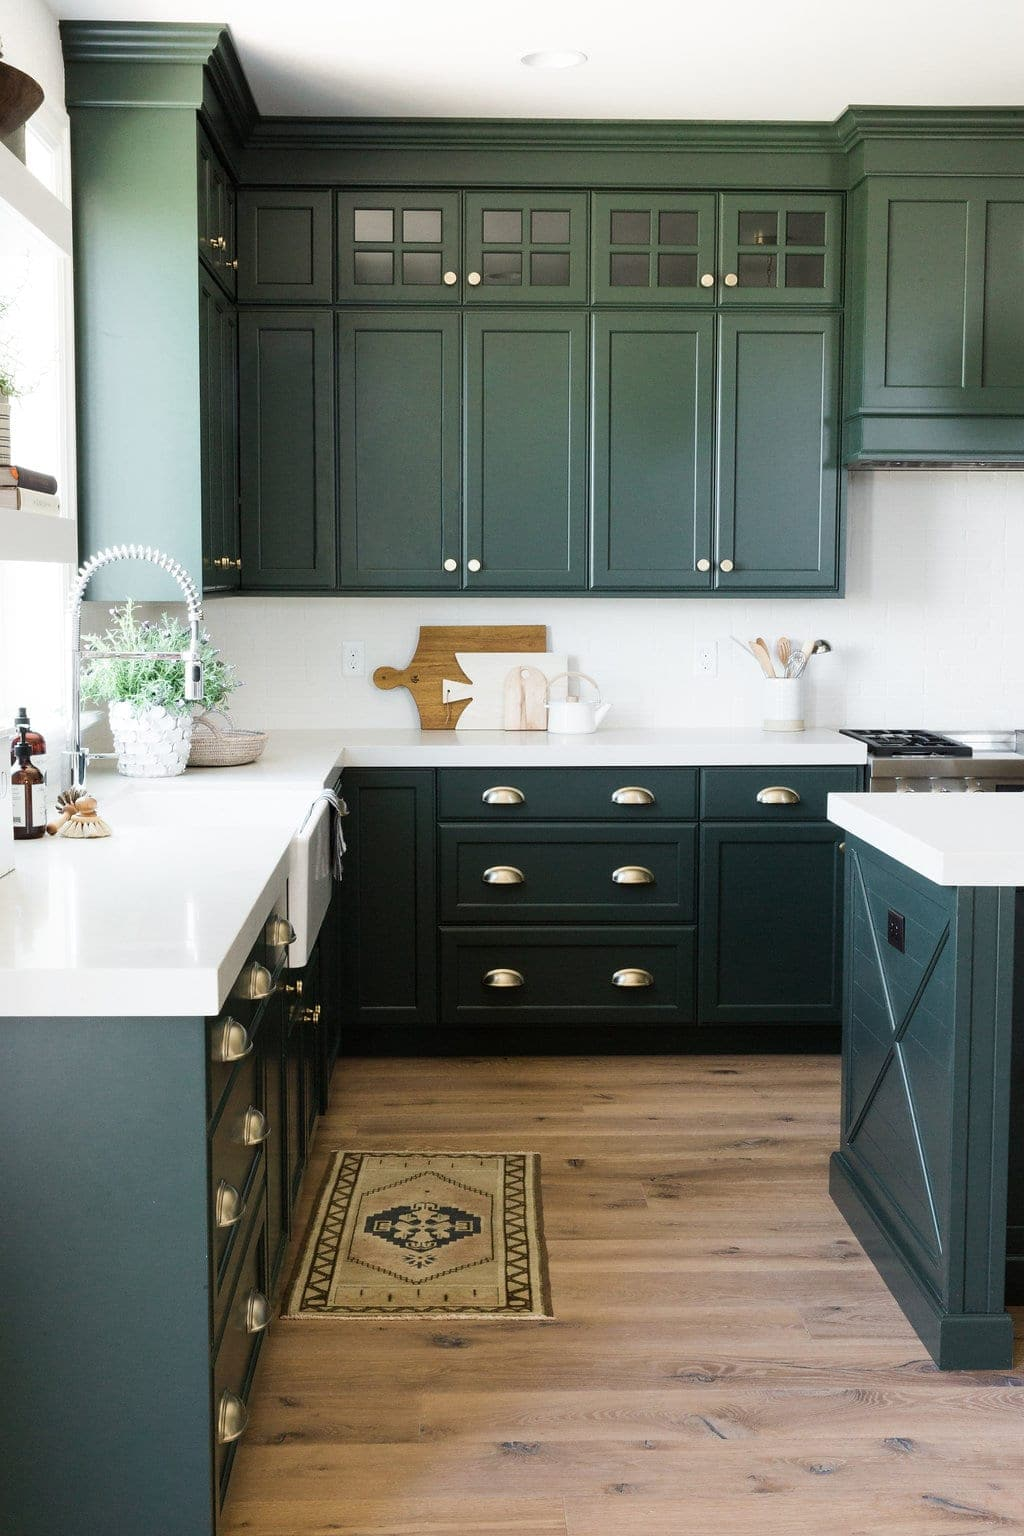 green kitchen cabinet inspiration bless er house rh blesserhouse com kitchen cabinet picture kitchen cabinet pictures with cream cabinets